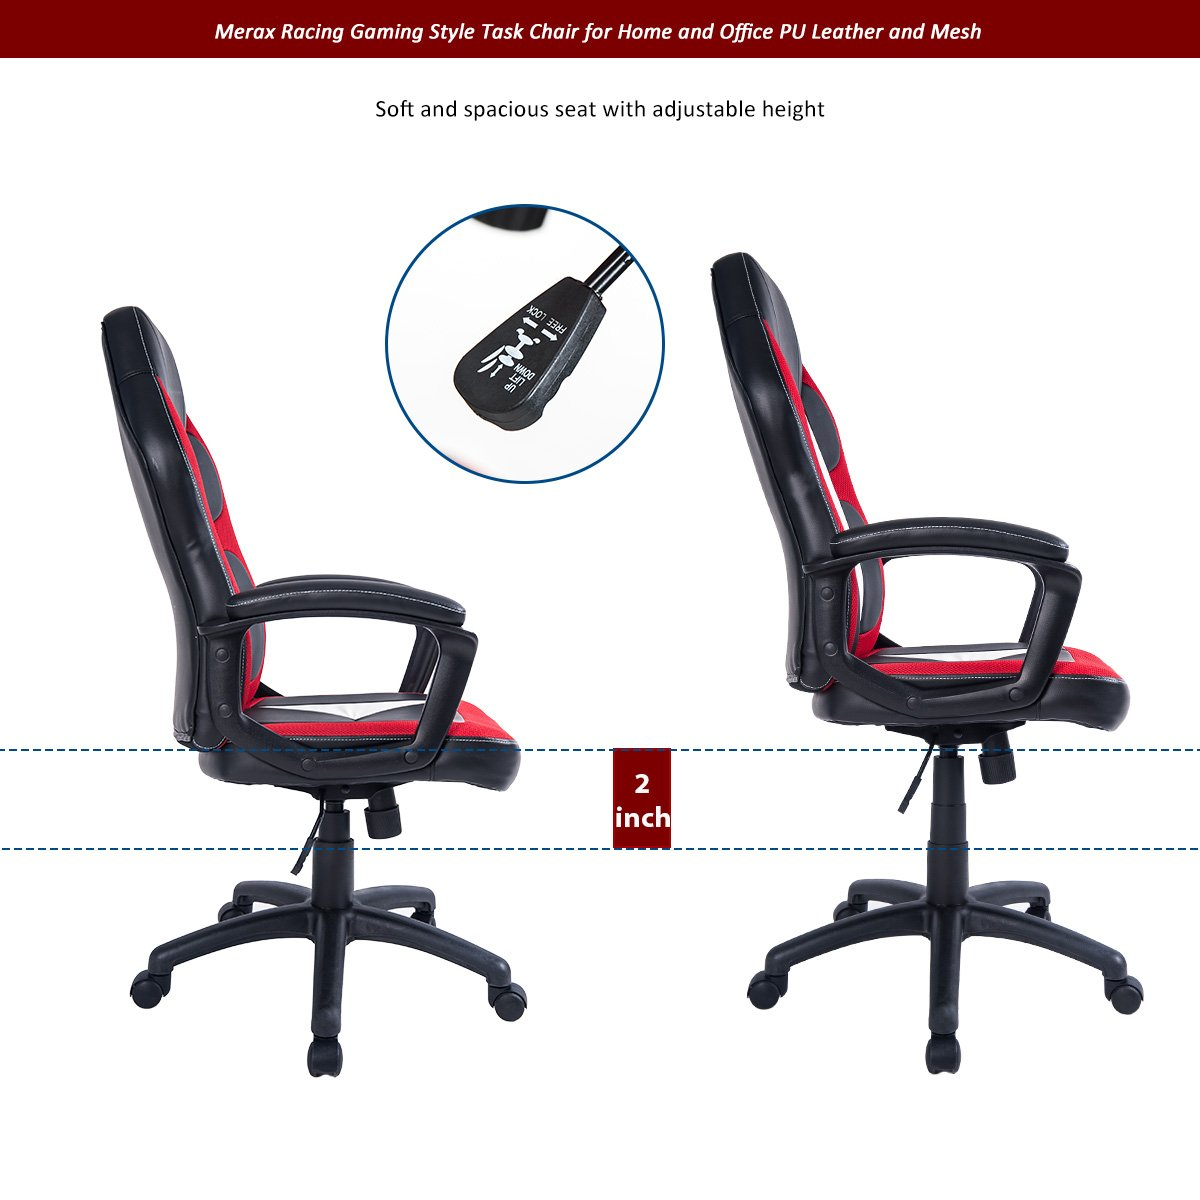 Merax Racing Gaming Style Task Chair for Home and Office PU Leather and Mesh Red